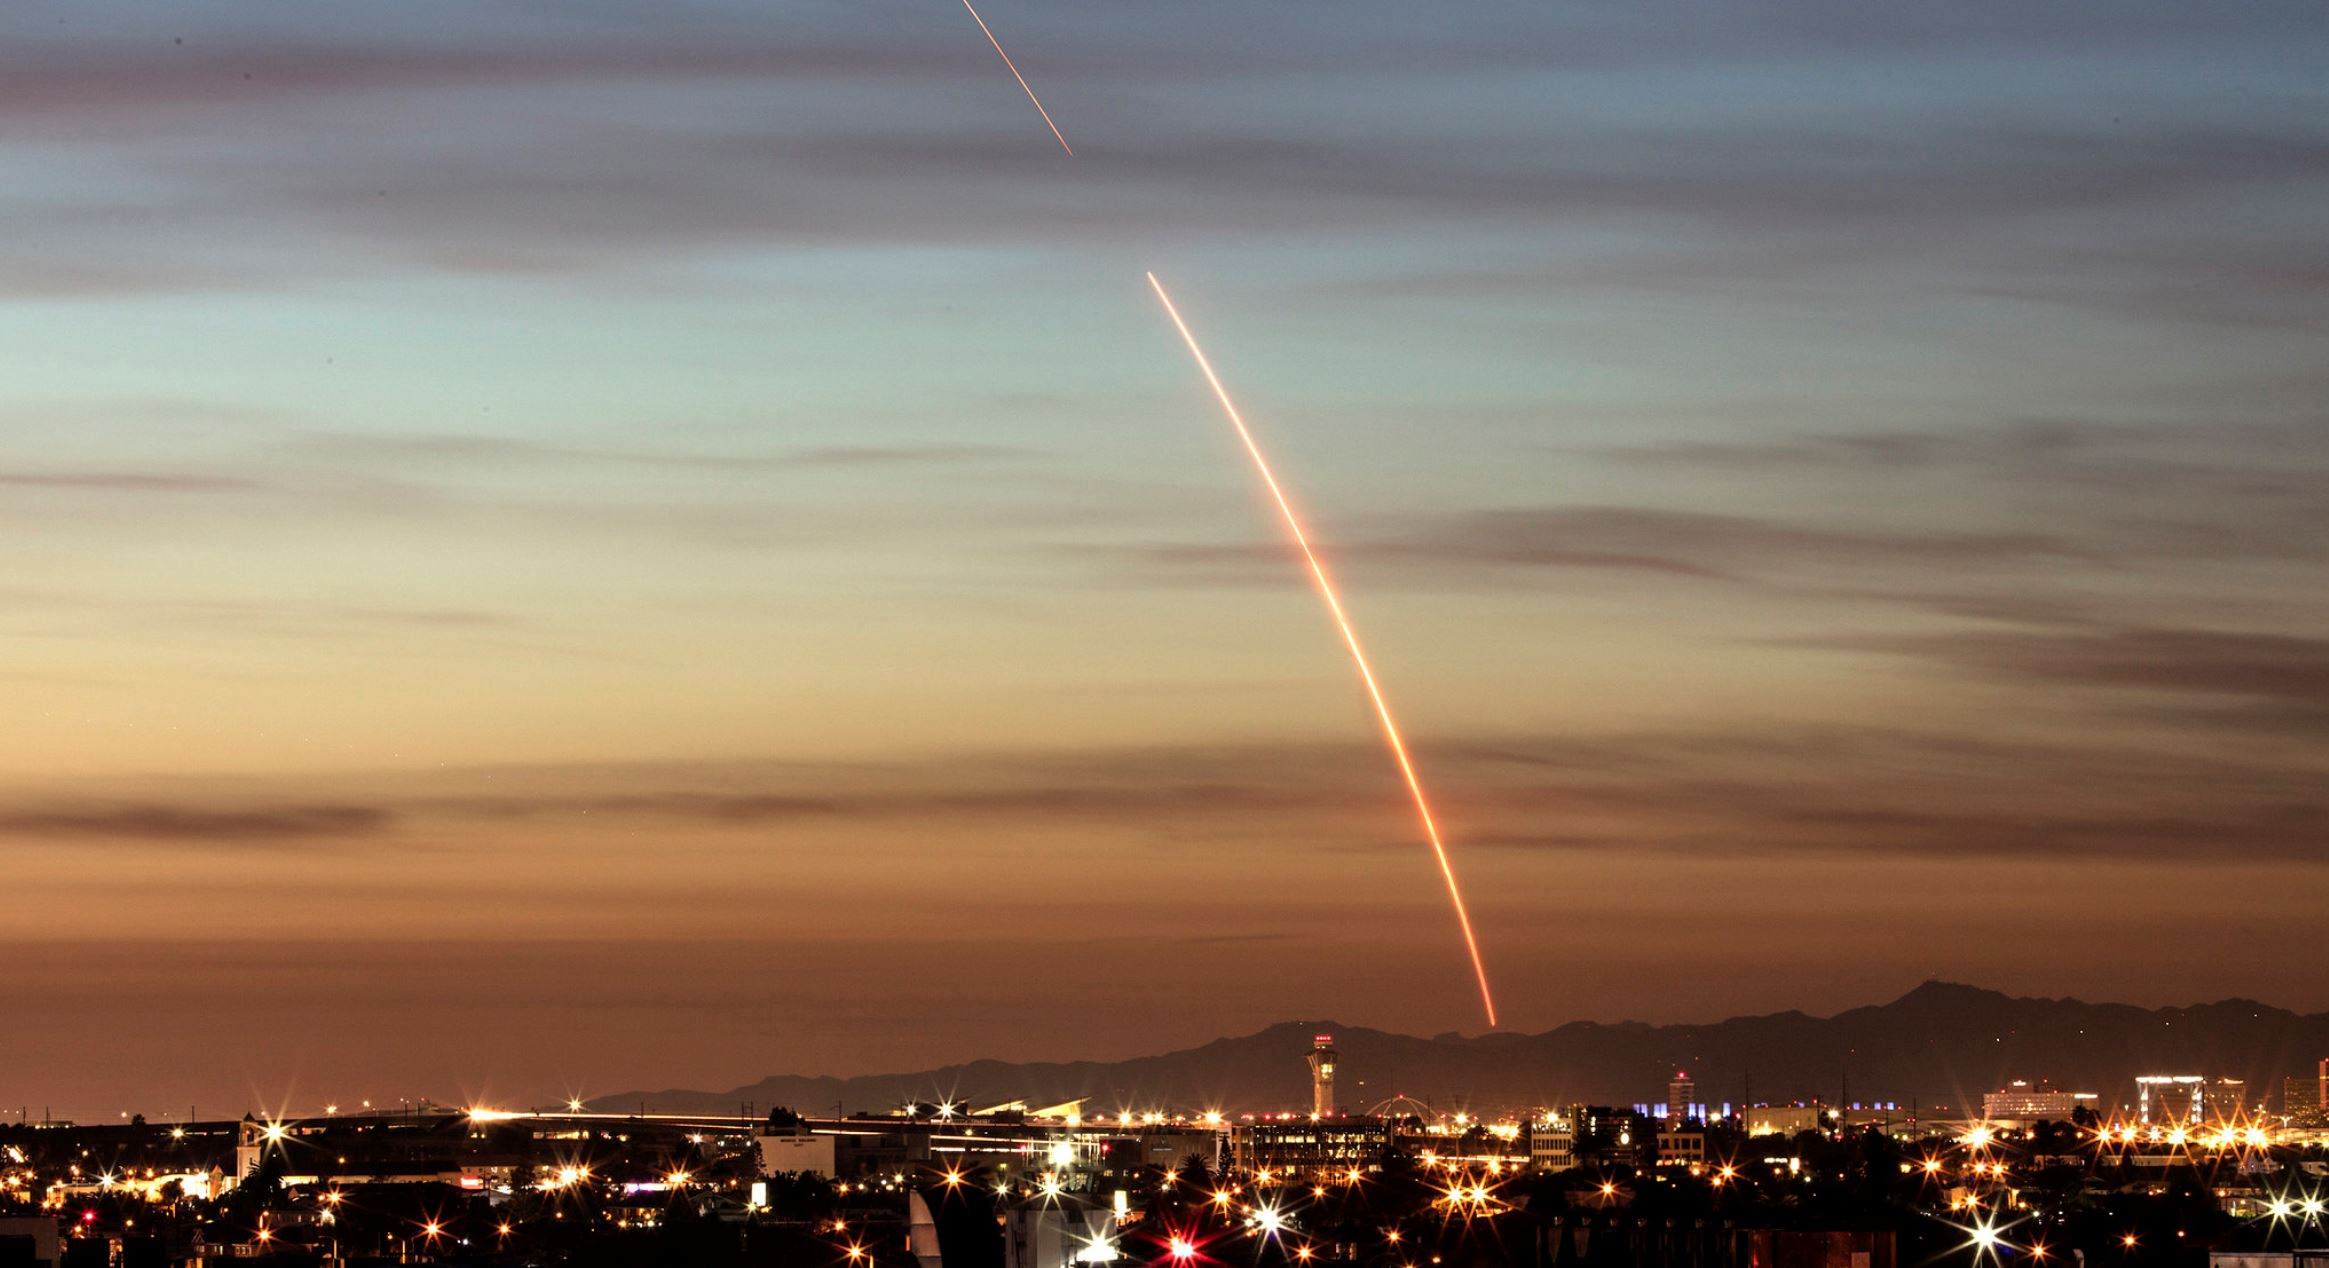 A SpaceX rocket launch - Image Credit:  SpaceX via flickr